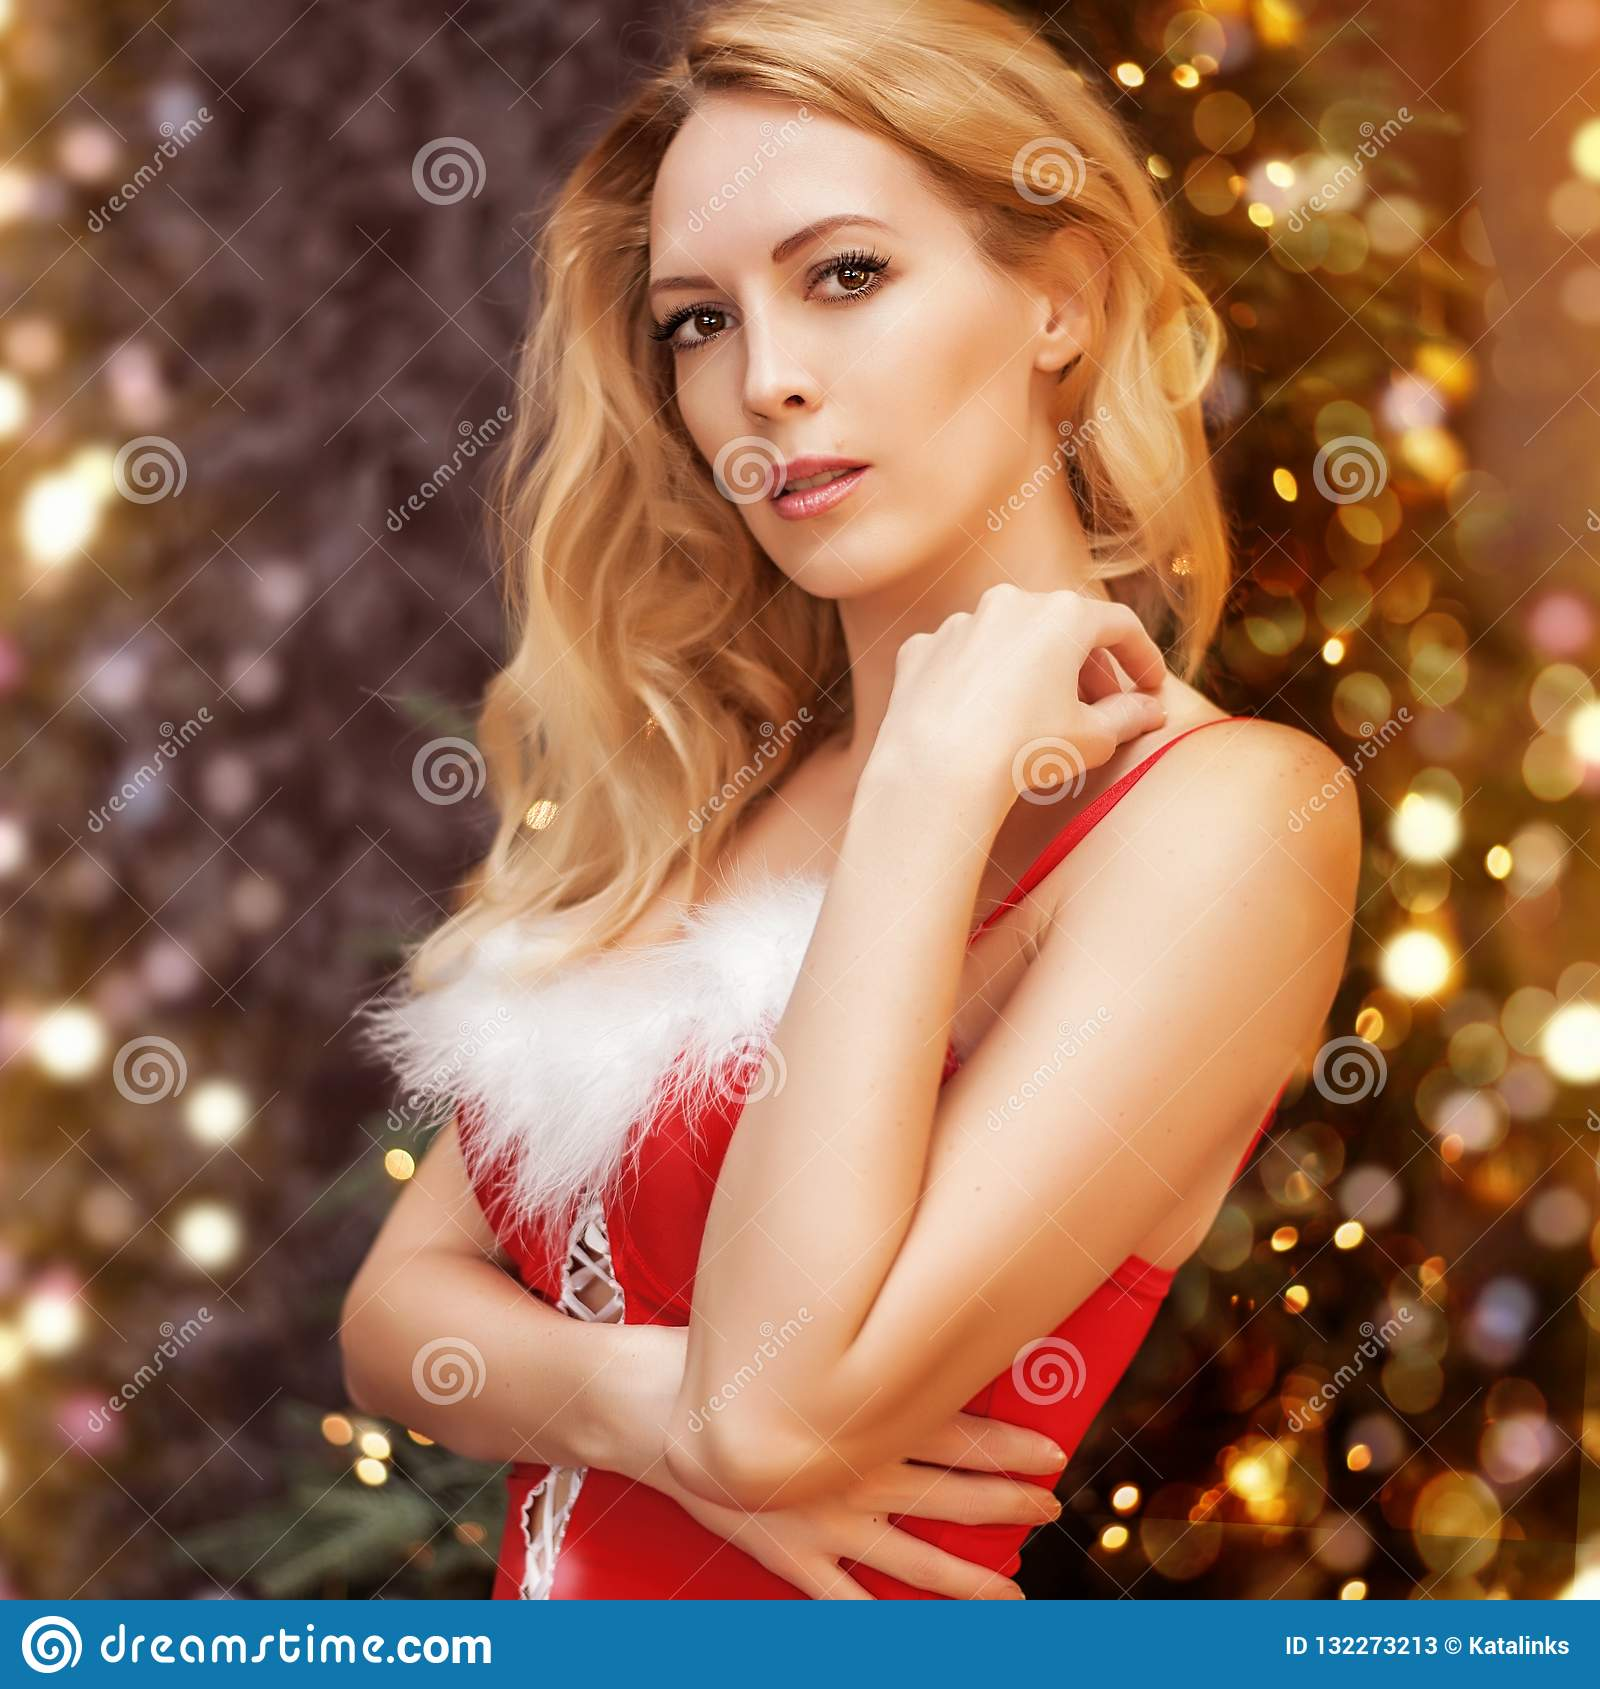 Beautiful blond woman in red christmas dress with white fur on breast stay  near christmas eve with lights and decorations. Portrait